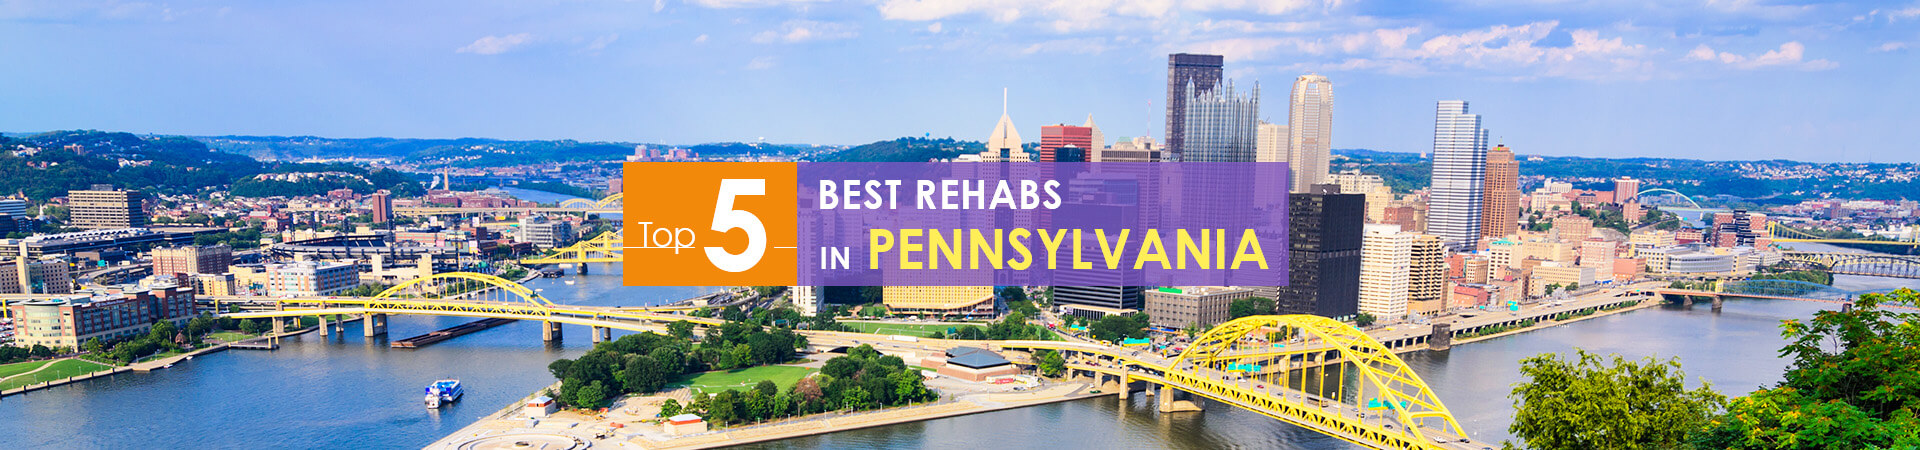 Pennsylvania view and top 5 rehabs caption